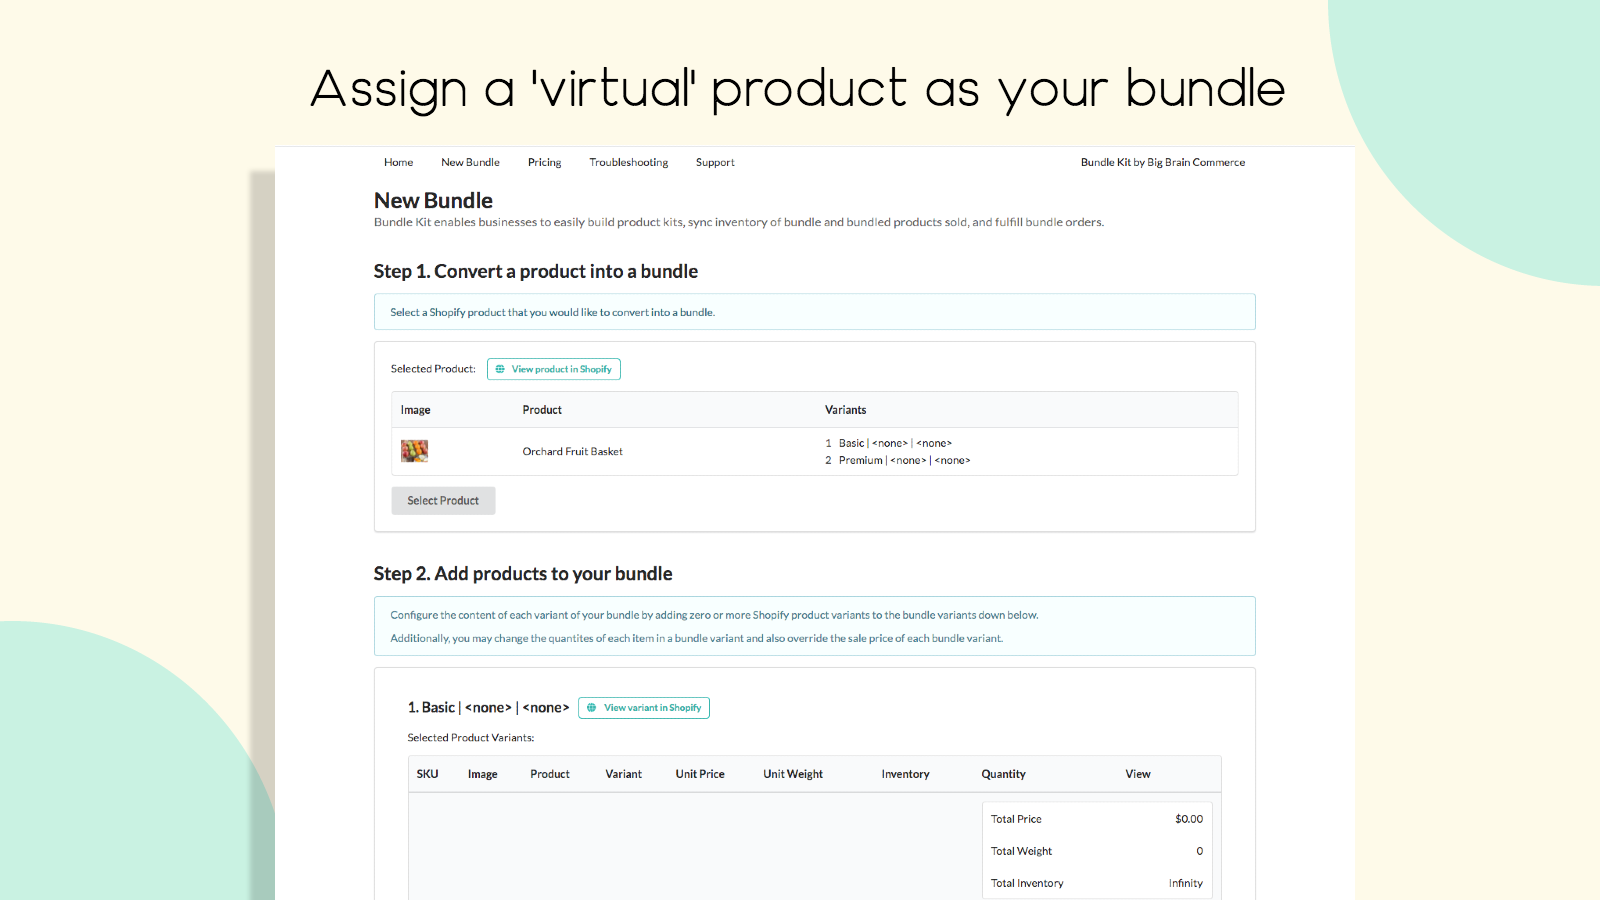 Assign a virtual product as your bundle